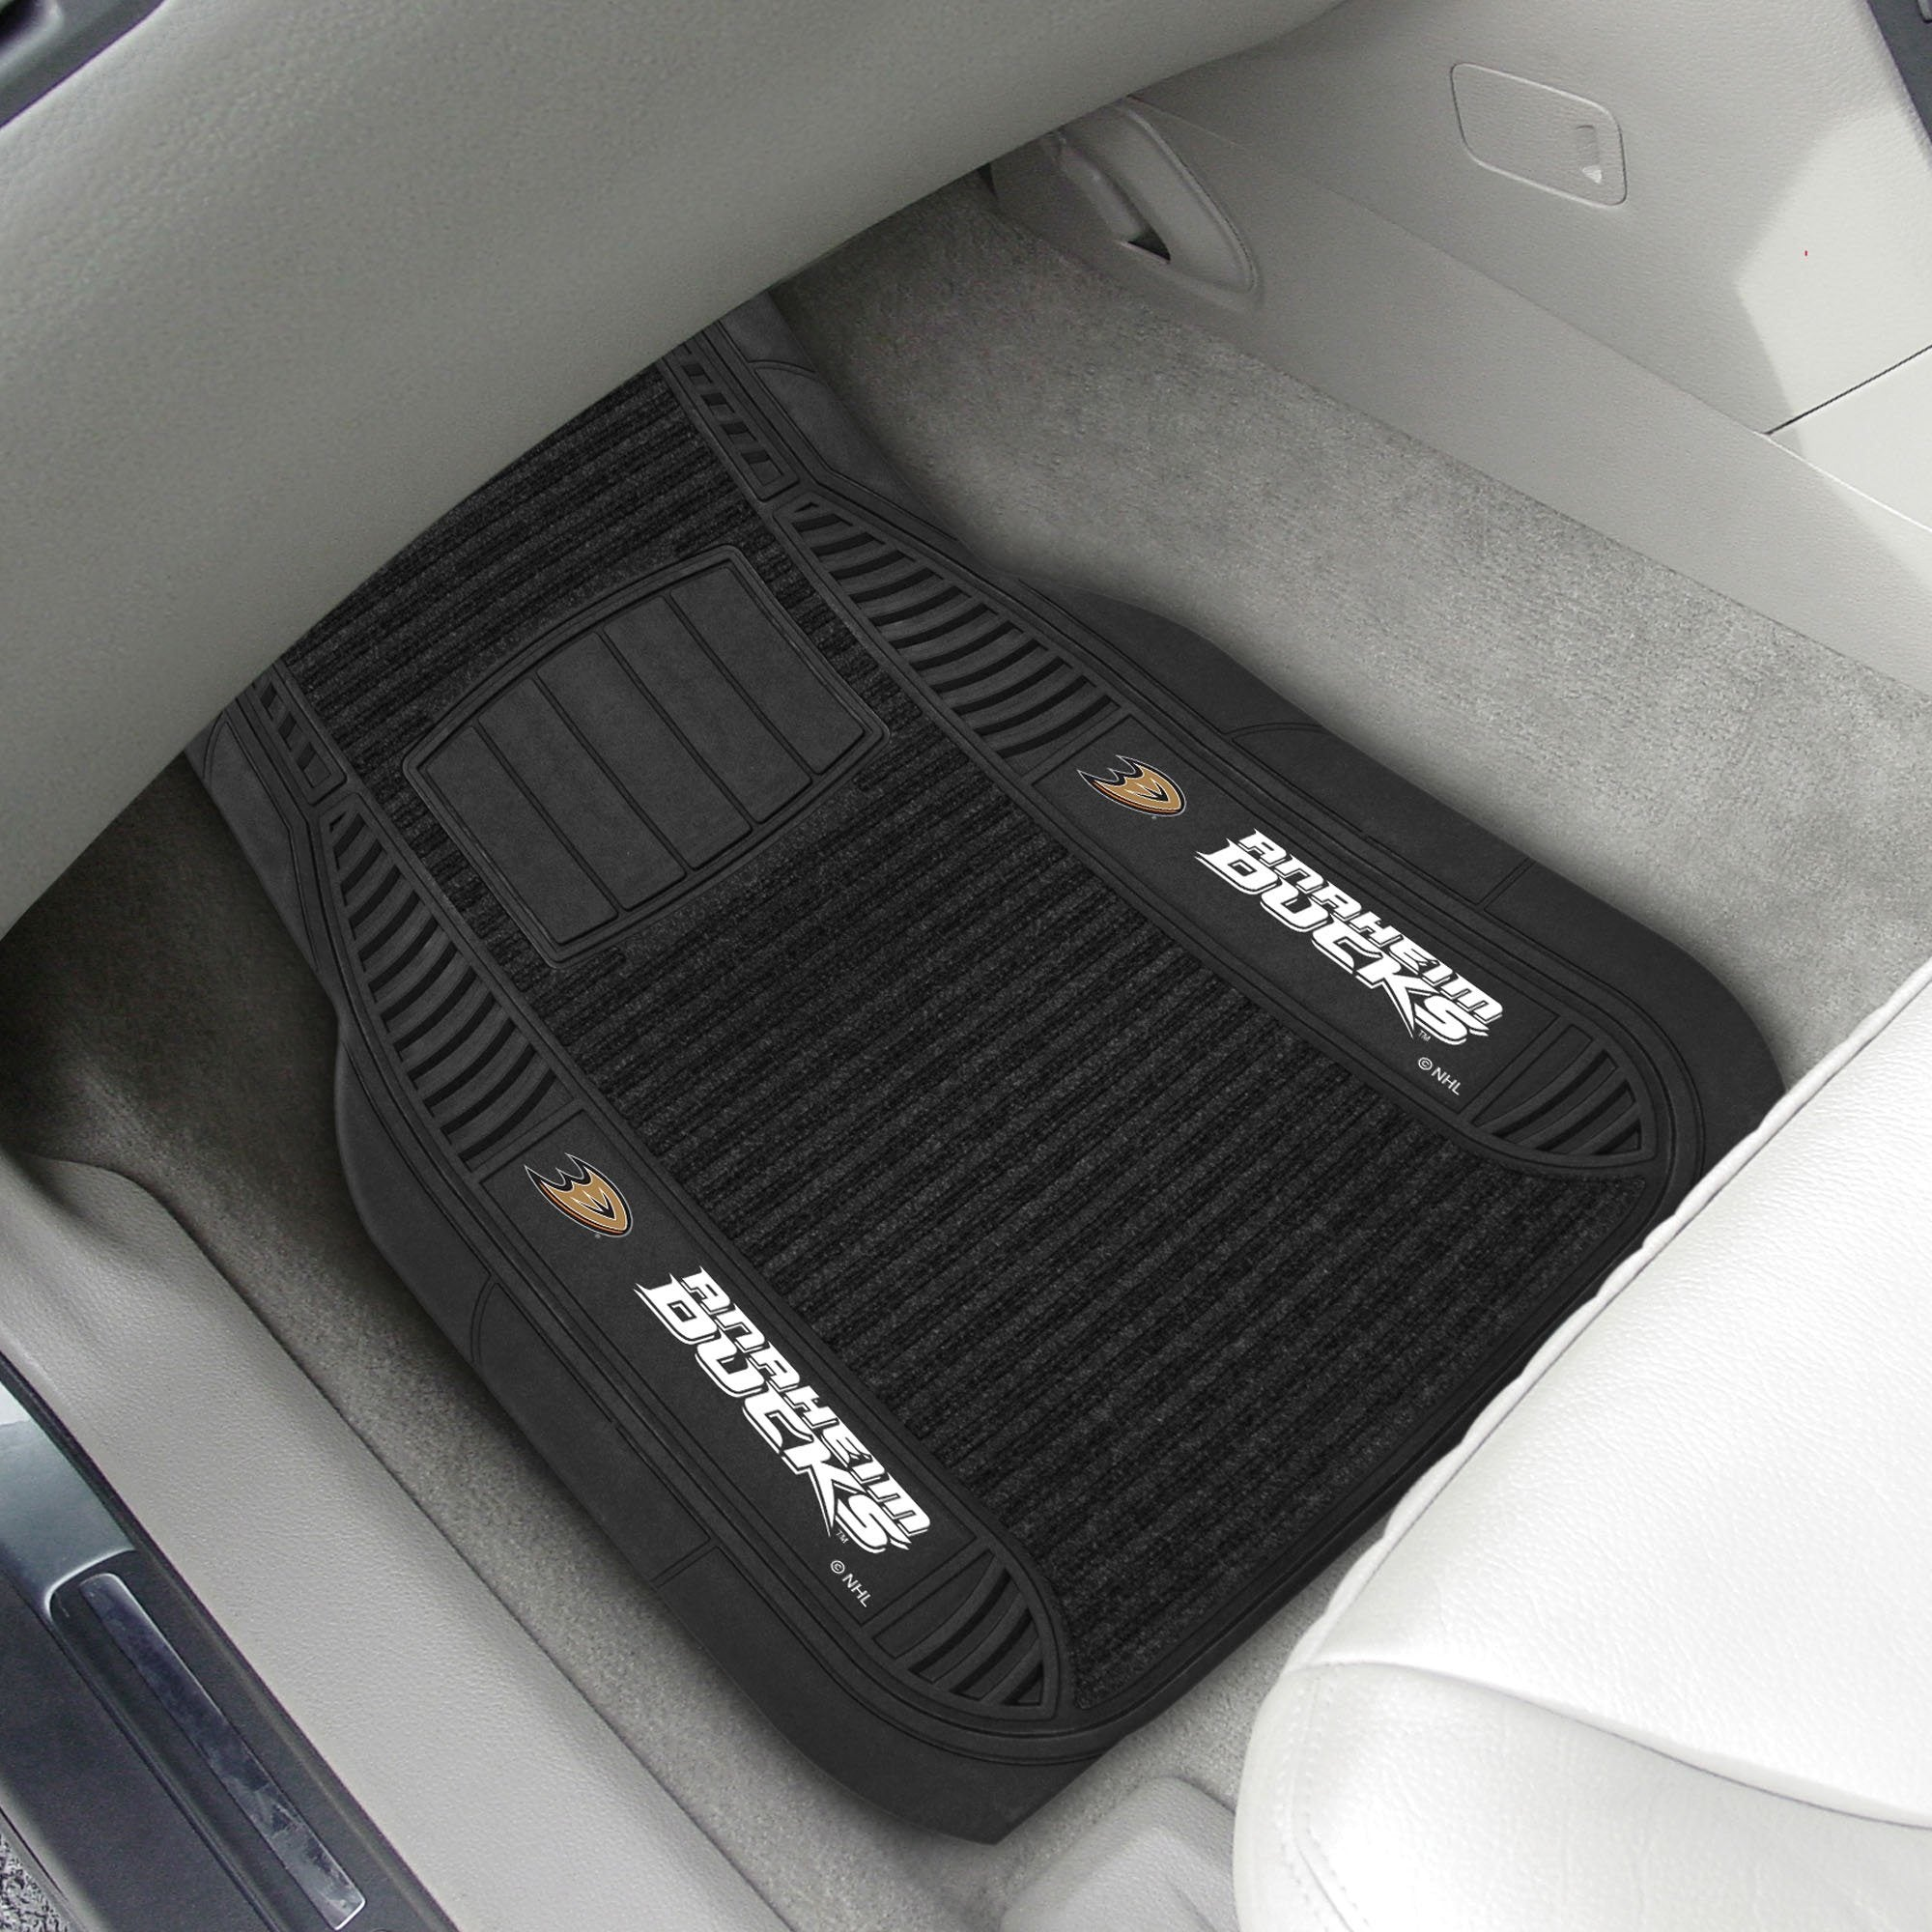 NHL - Deluxe Car Mat, 2-Piece Set NHL Mats, Front Car Mats, 2-pc Deluxe Car Mat Set, NHL, Auto Fan Mats Anaheim Ducks